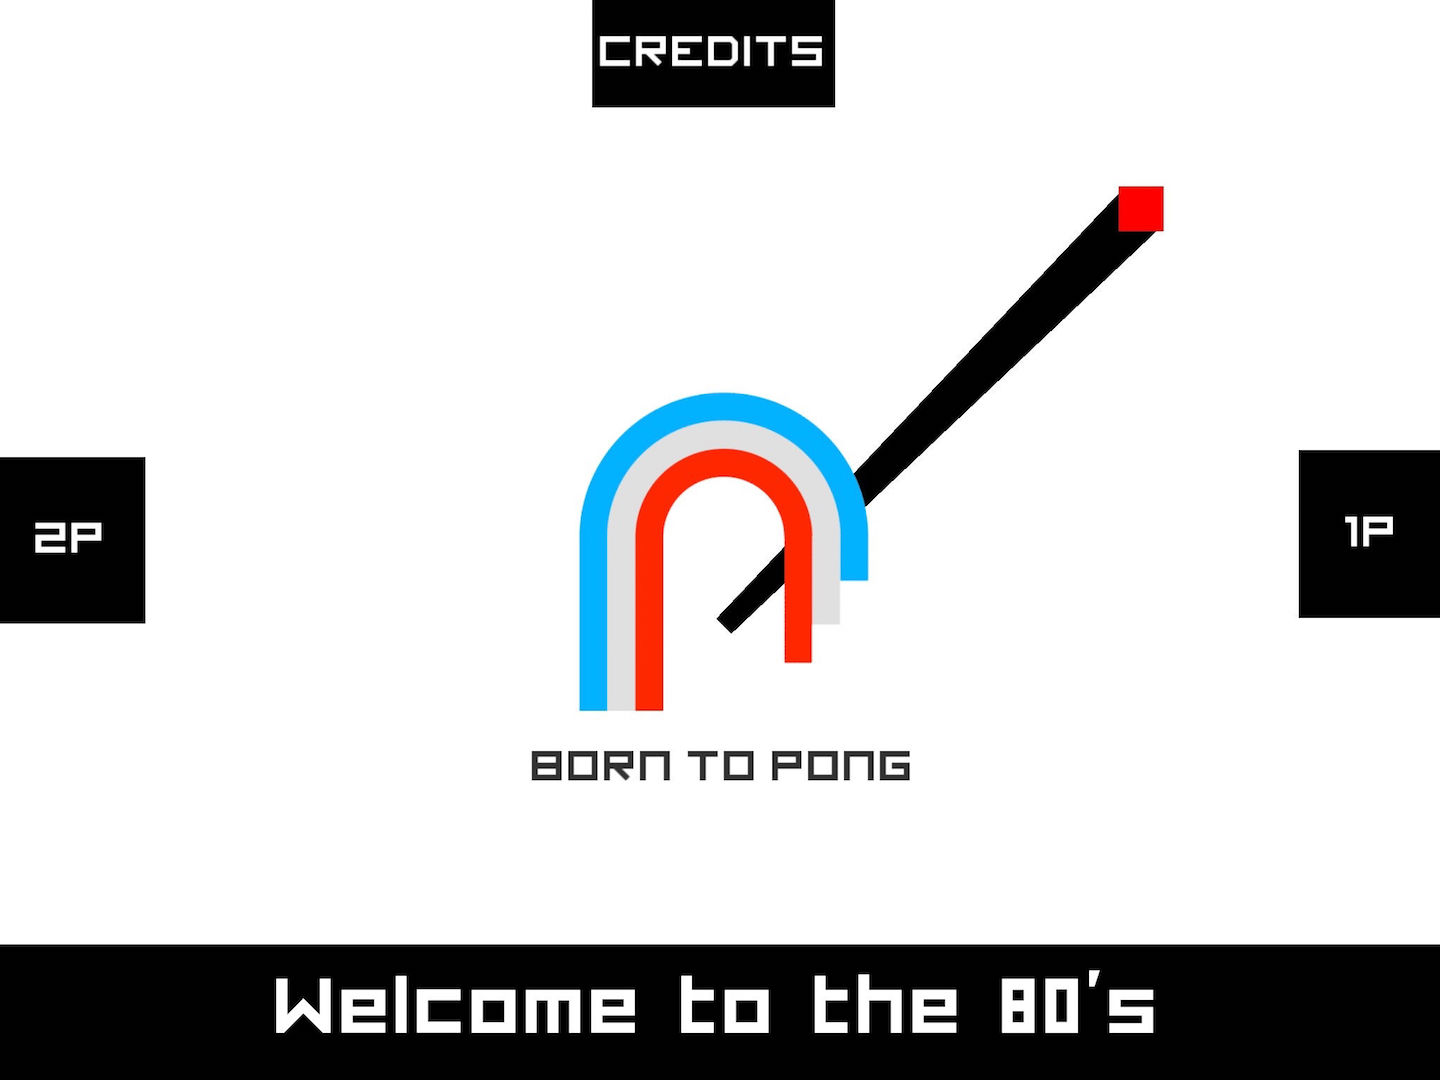 Born to Pong